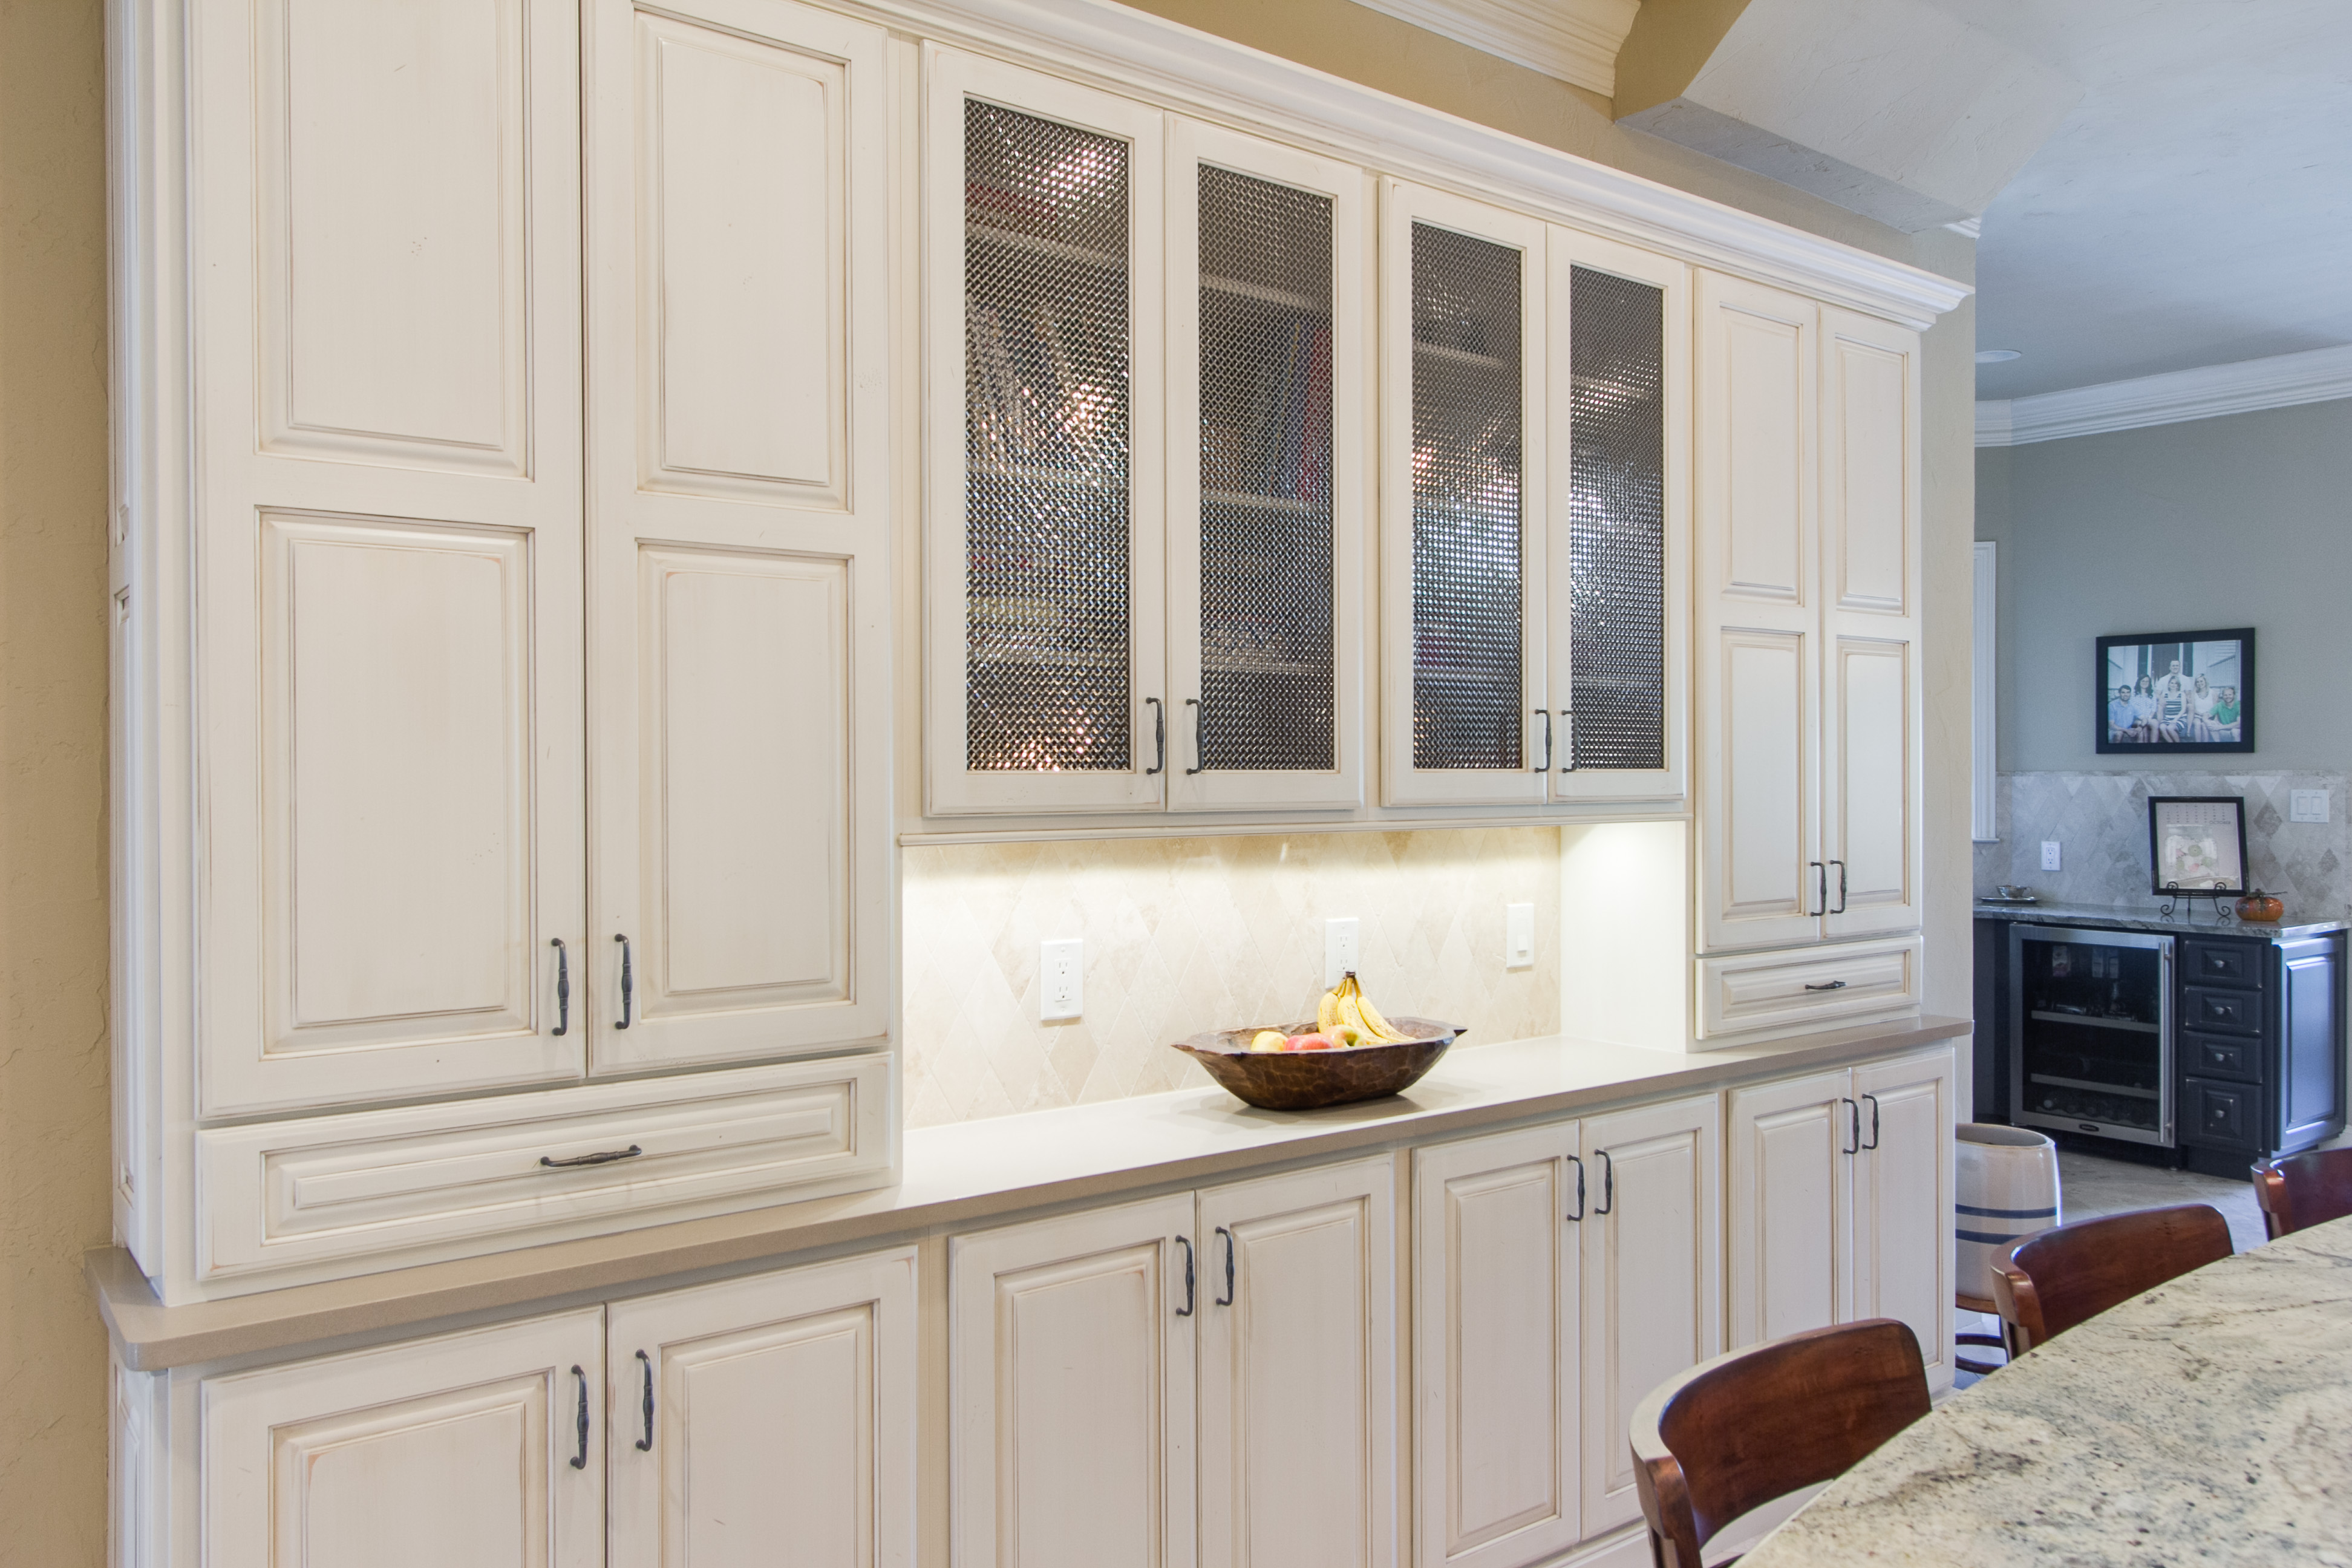 kitchen wall cabinets white kitchen wooden wall cabinets drawers also large MJWAOQL